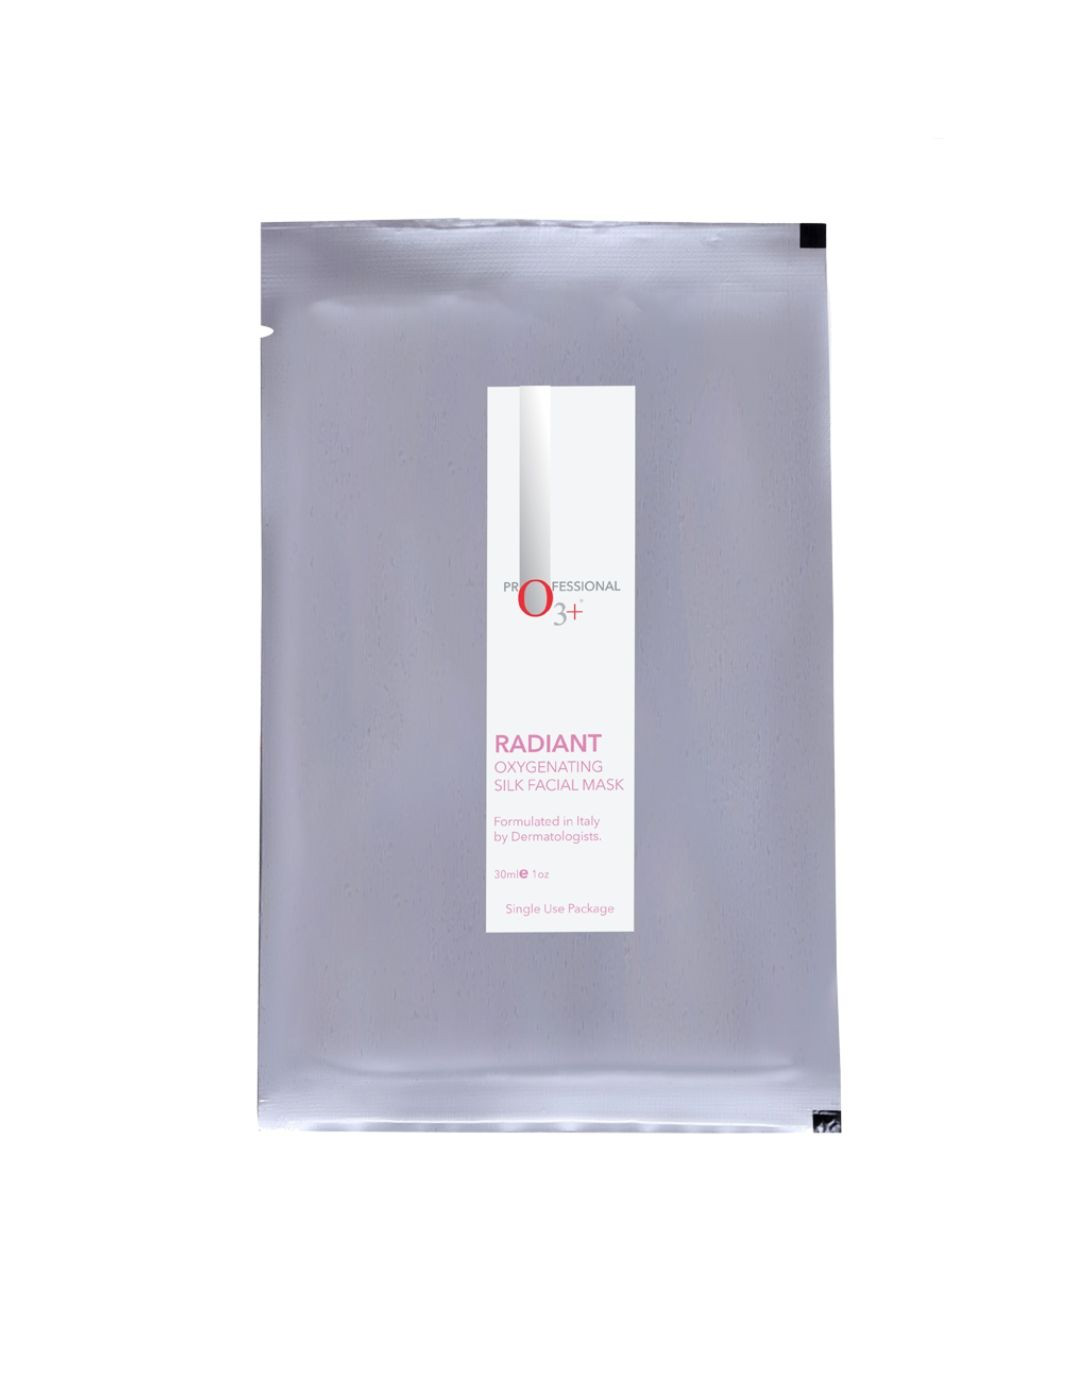 O3+ Radiant Oxygenating Silk Facial Mask (Pack of 2)